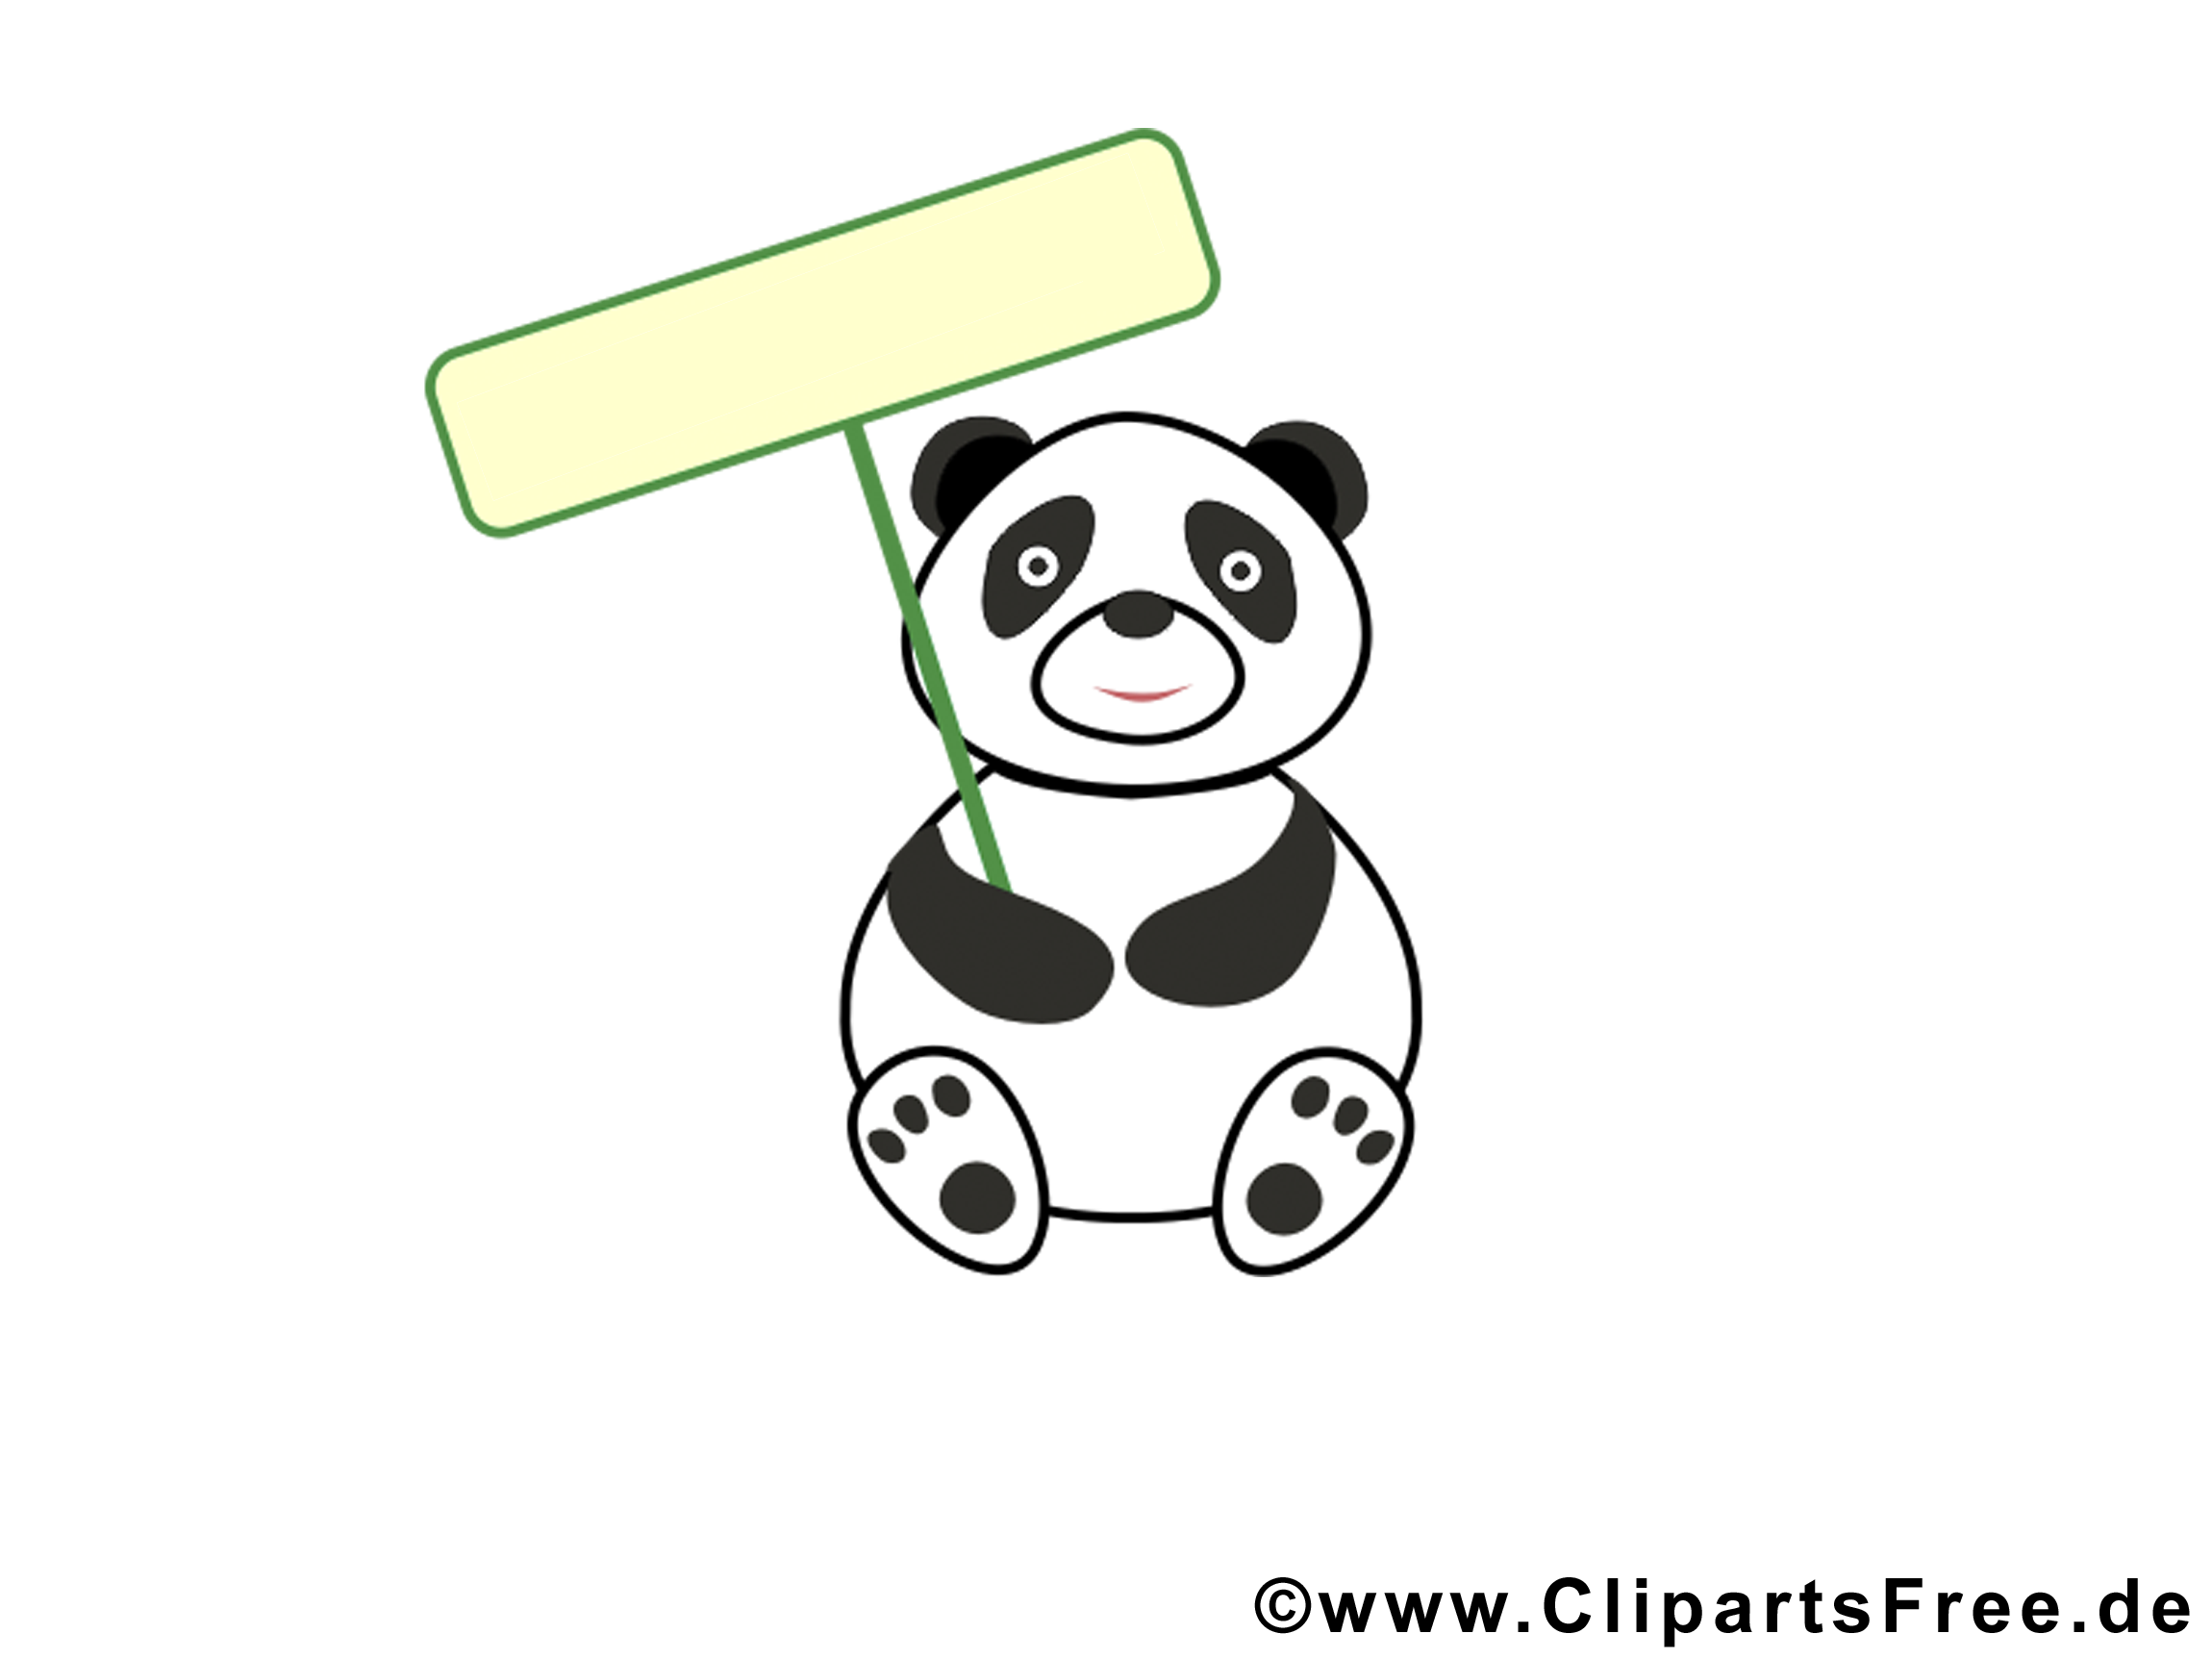 Panda cliparts gratuis – Animal images